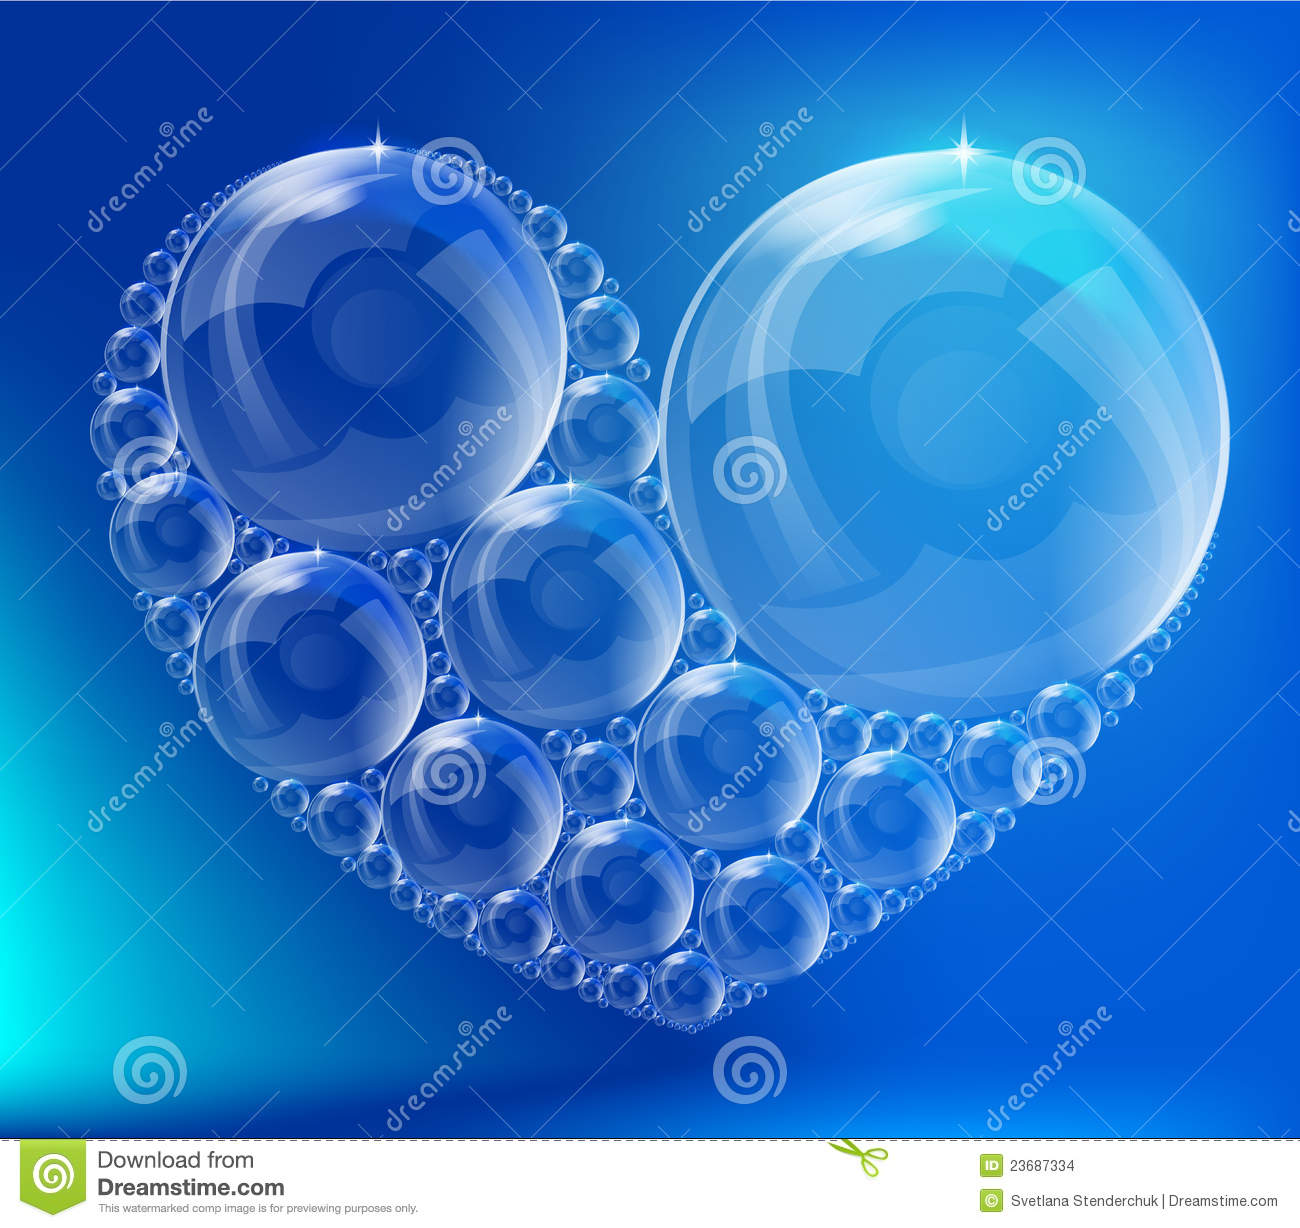 The Heart Of The Bubbles Stock Images - Image: 23687334